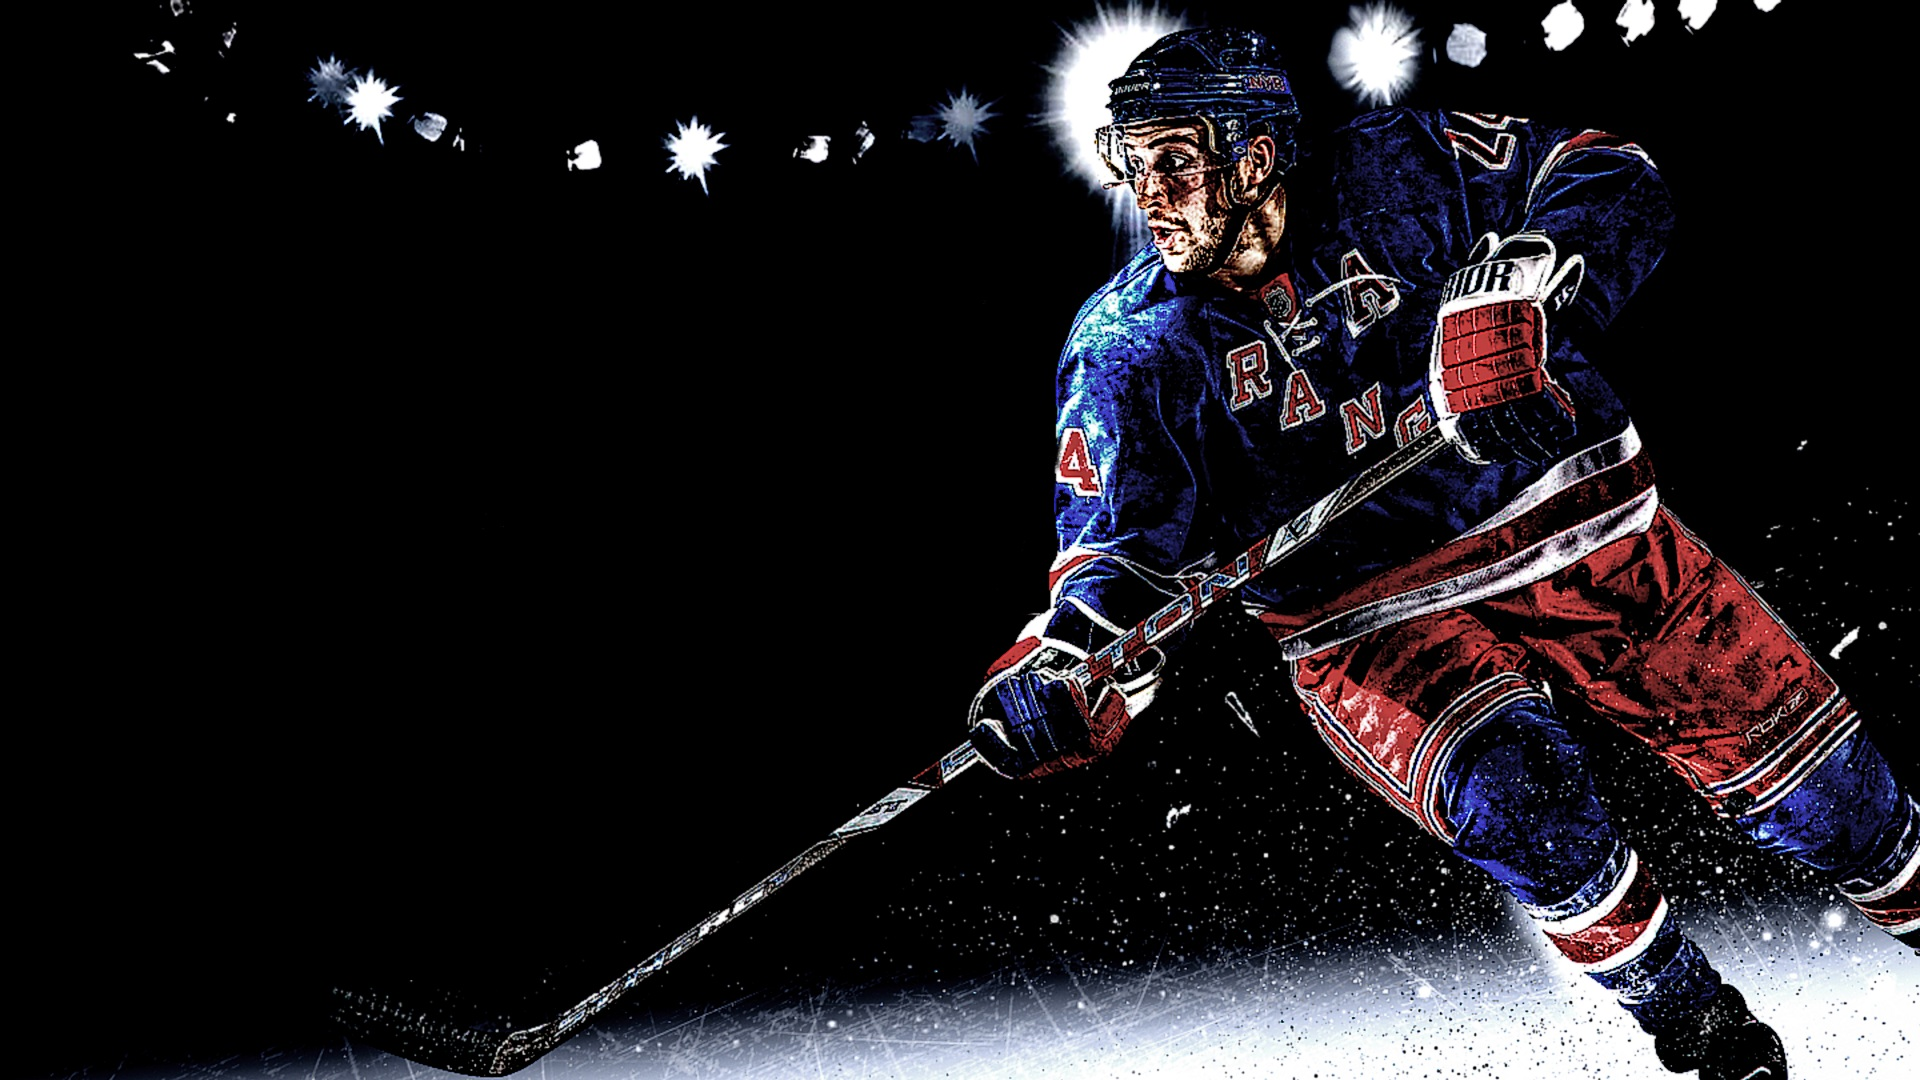 And here even more information about New York Rangers 1920x1080